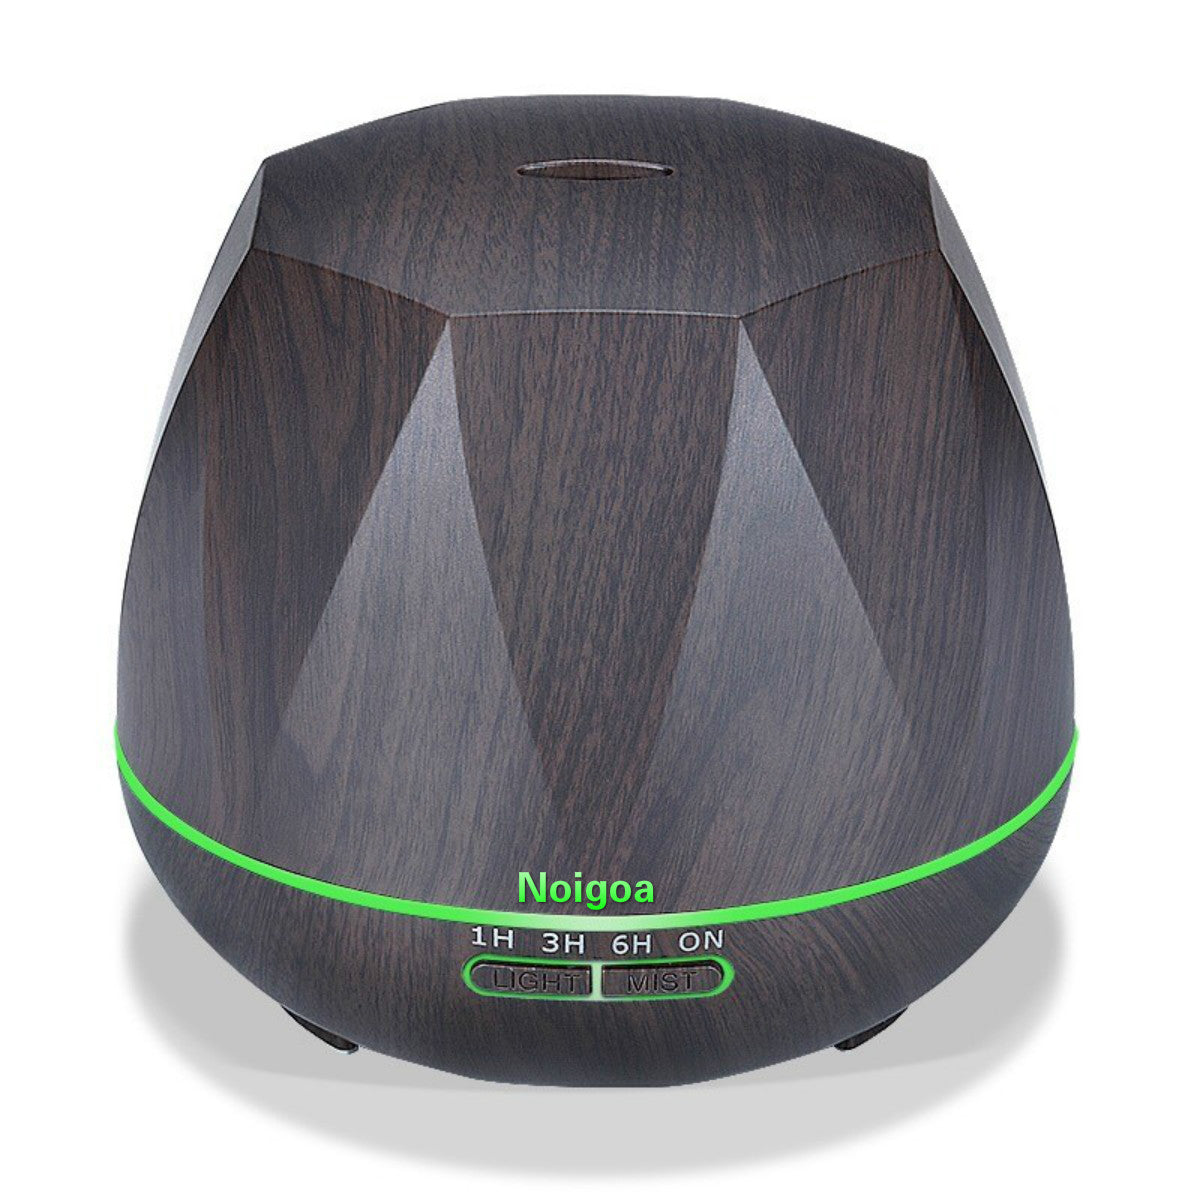 Unique design 550ml wood grain ultrasonic remote control essential oils air purifier humidifier aroma diffuser with 7 LED light